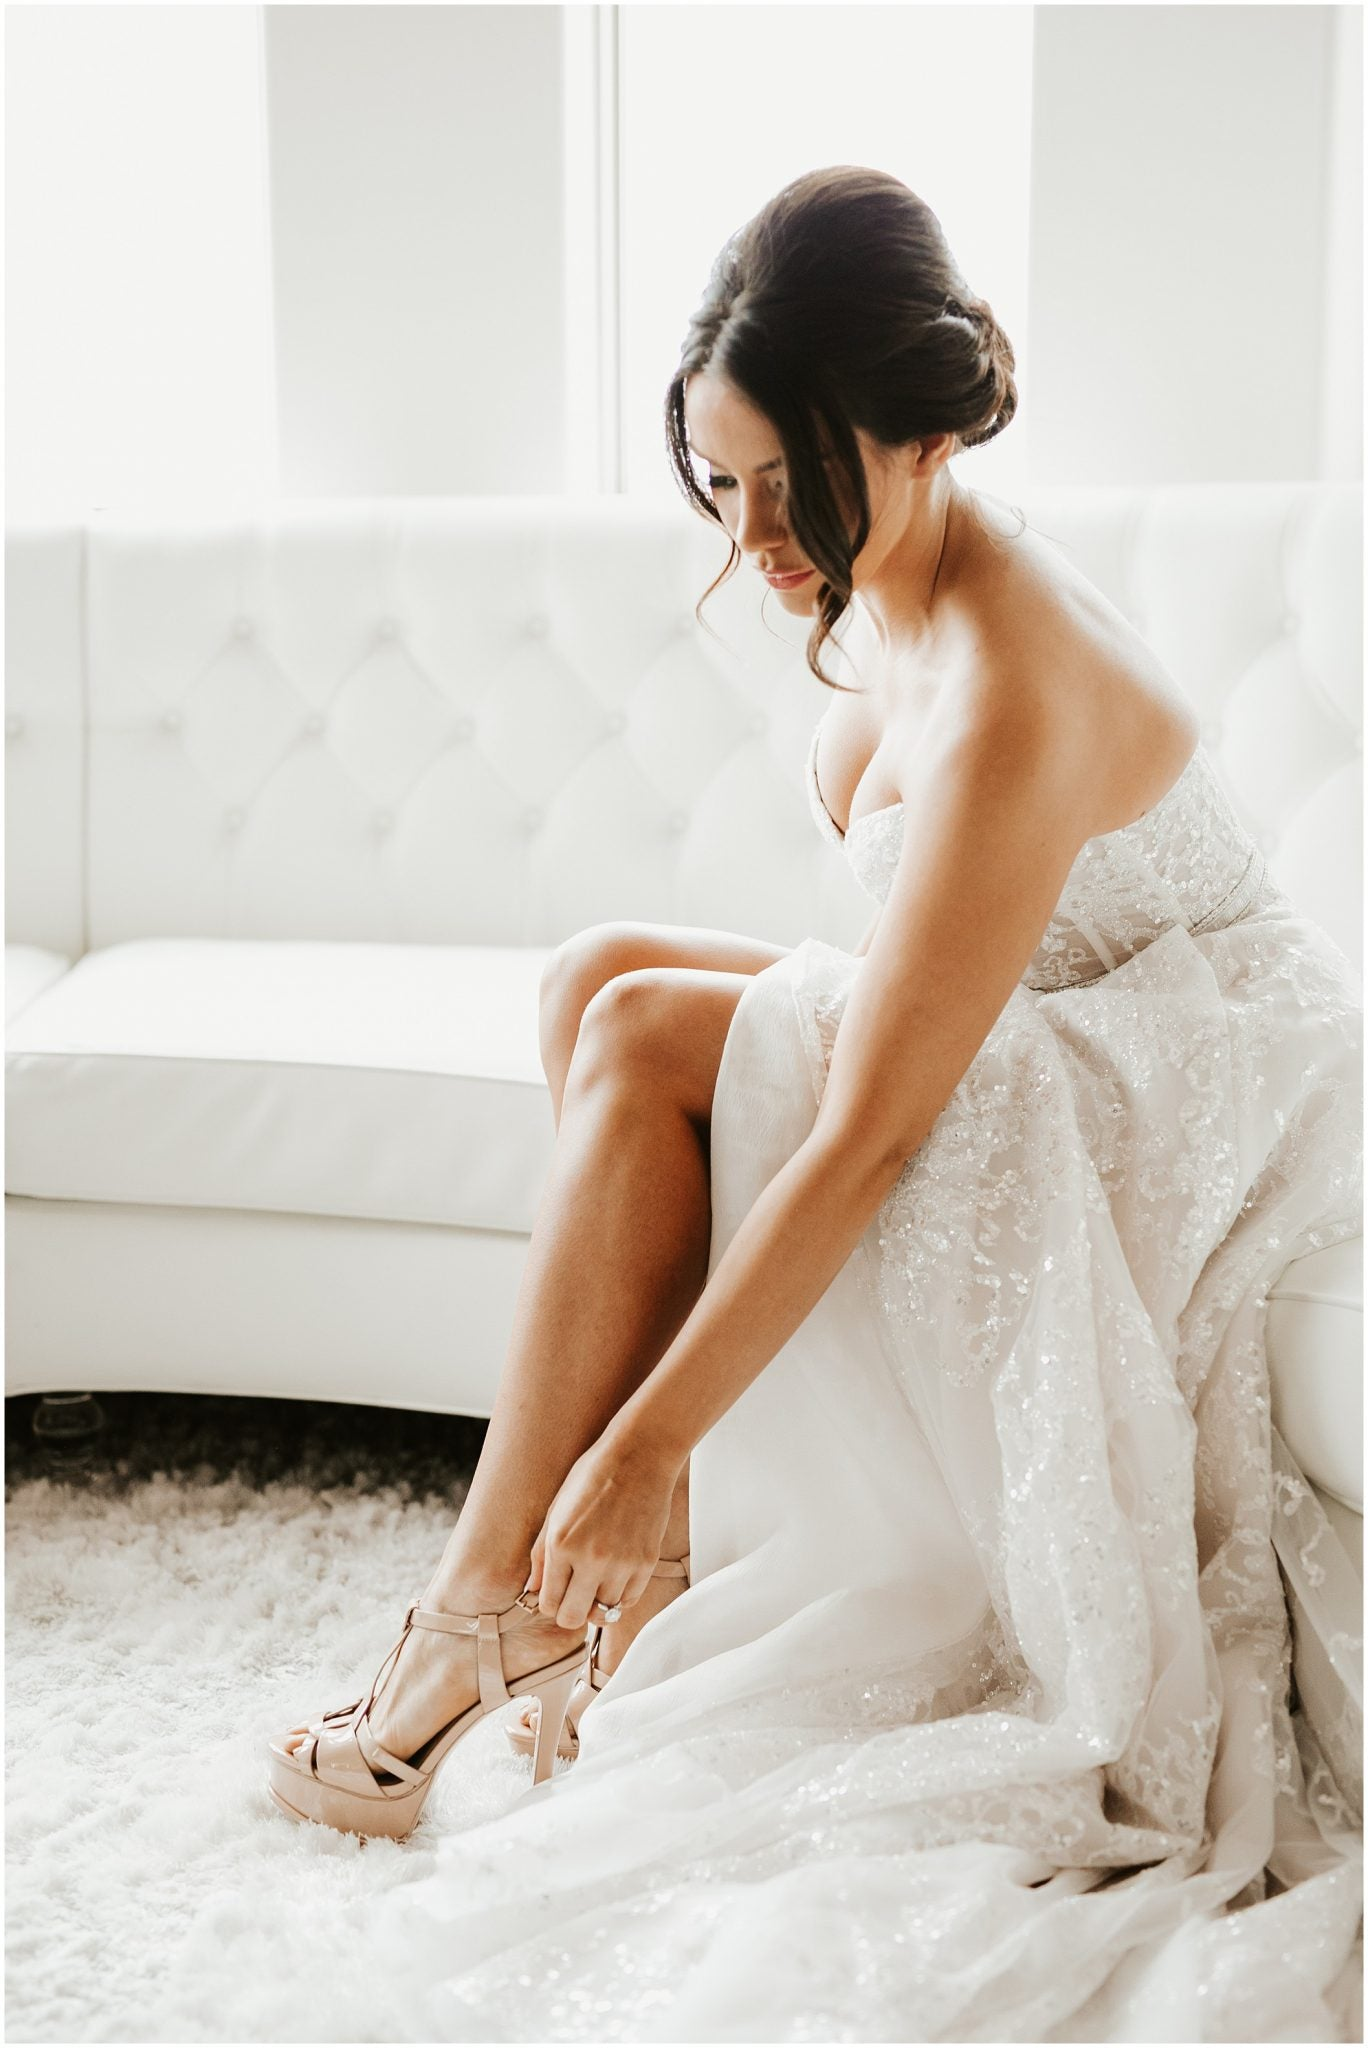 A bride posing for a picture while bending down to buckle her shoe